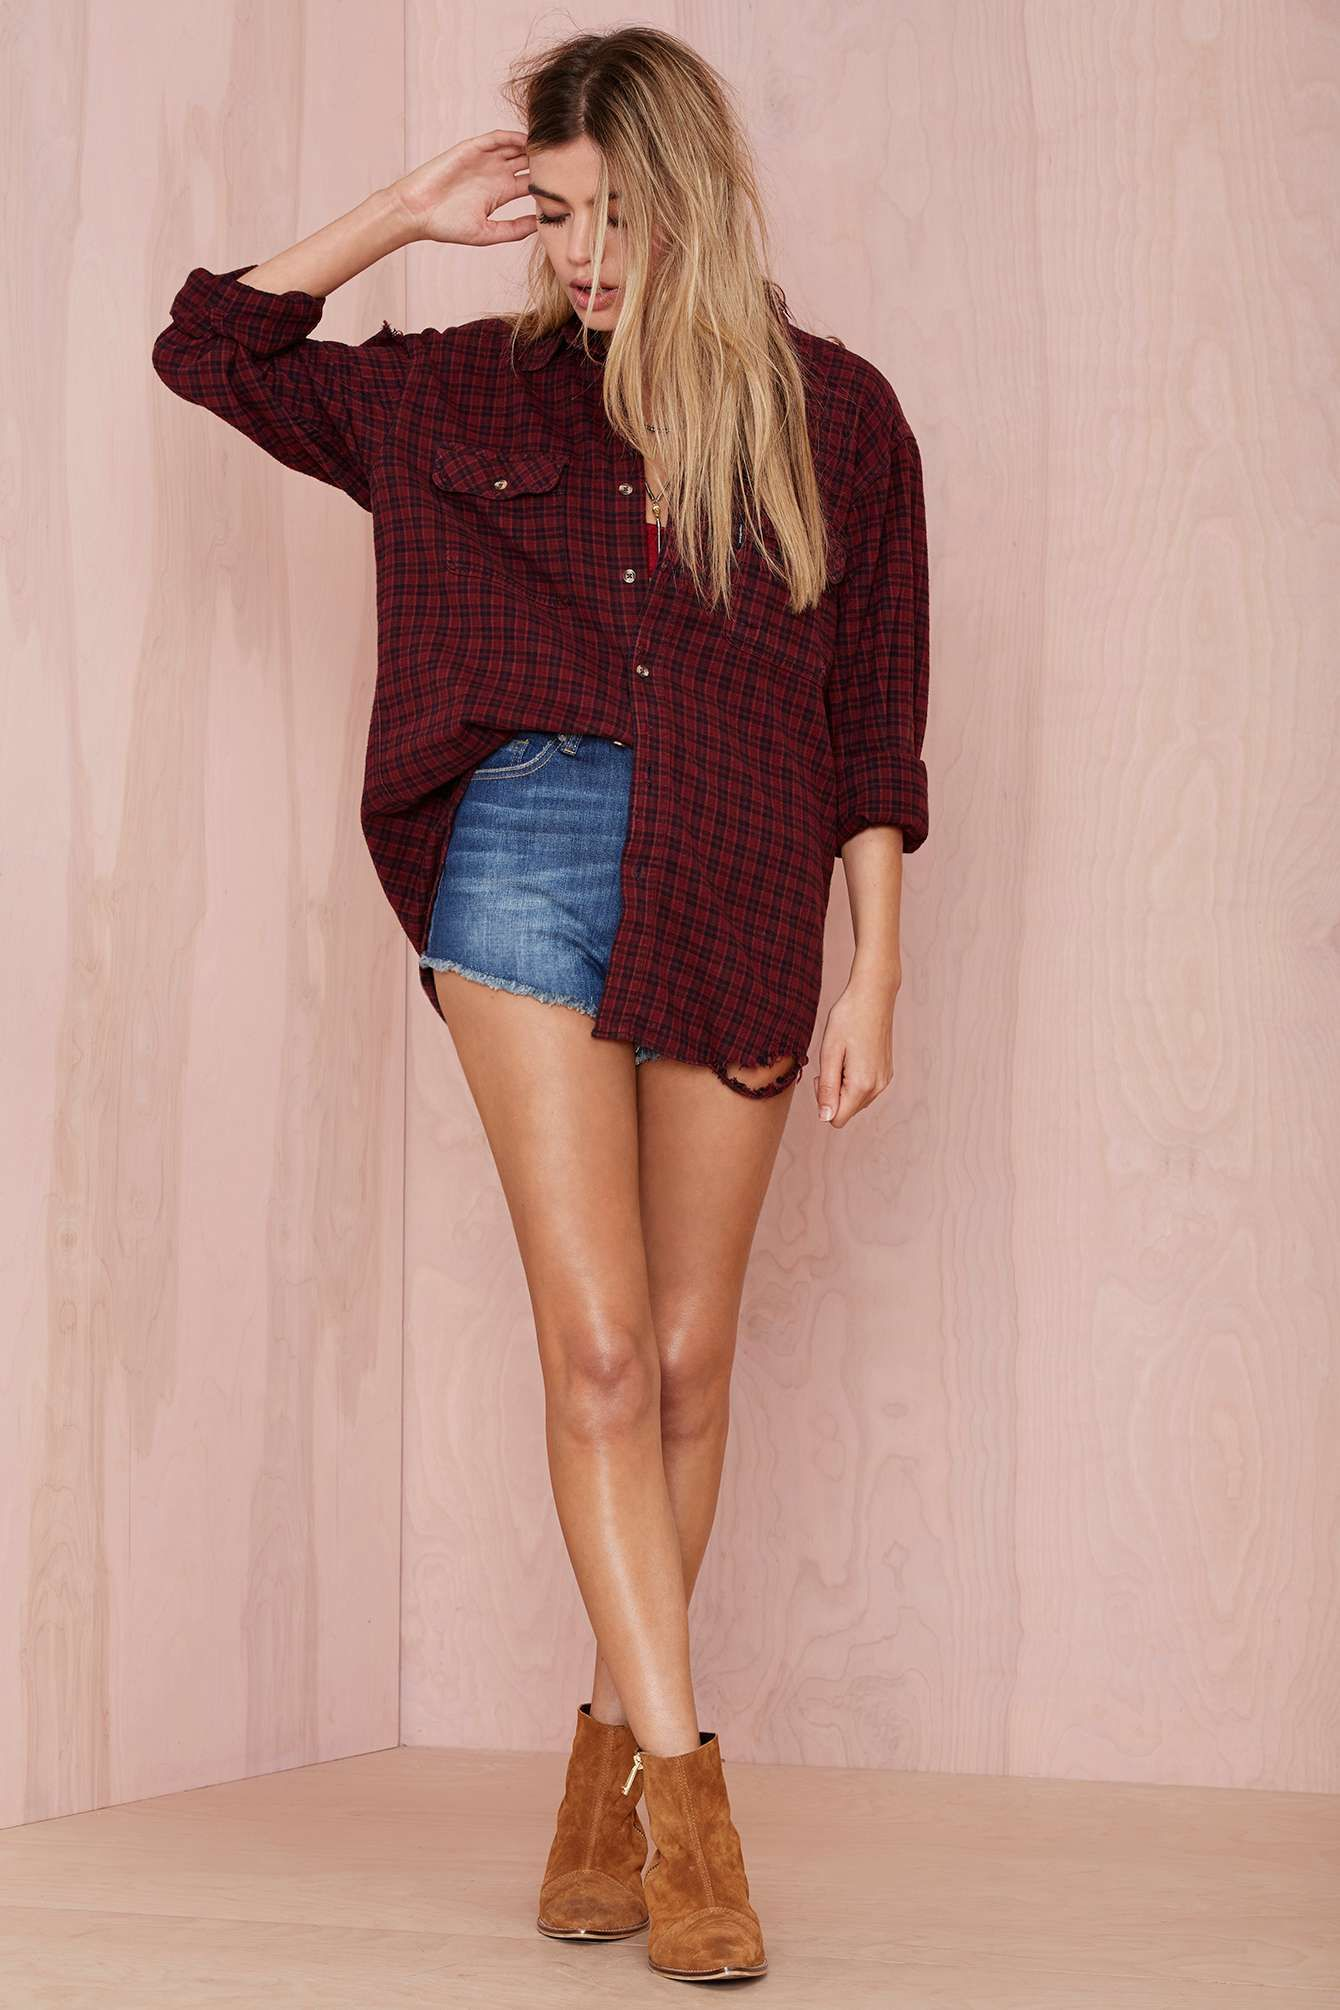 Flannel outfits around waist  After Party Vintage Surefire Distressed Flannel  Shop Tops at Nasty